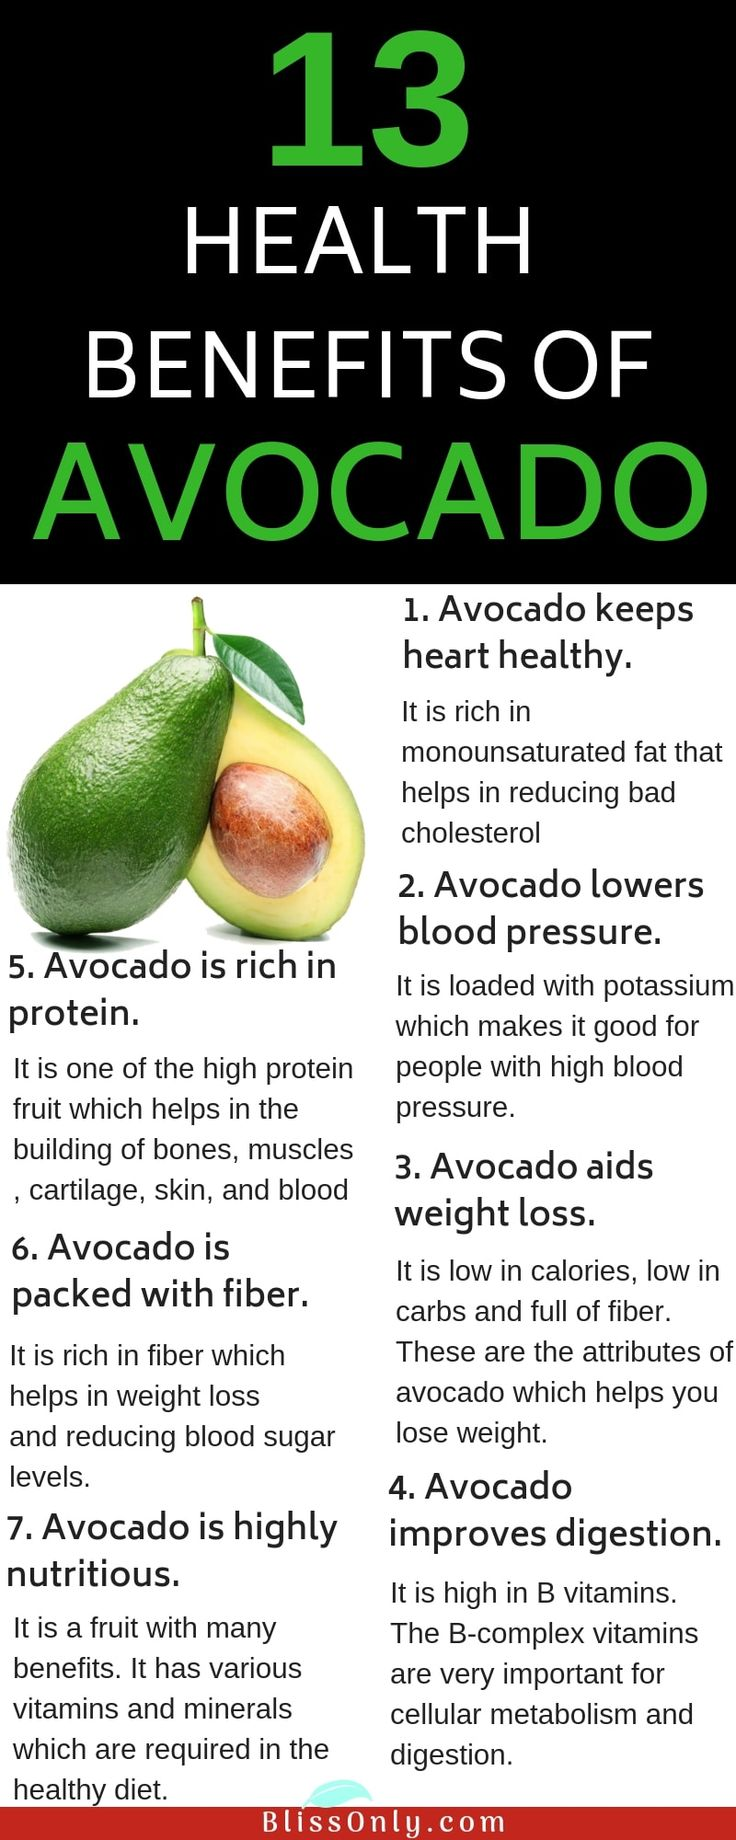 13 Health Benefits Of Avocado – Blissonly | Natural Beauty, Weightloss, Healthy Living Ideas